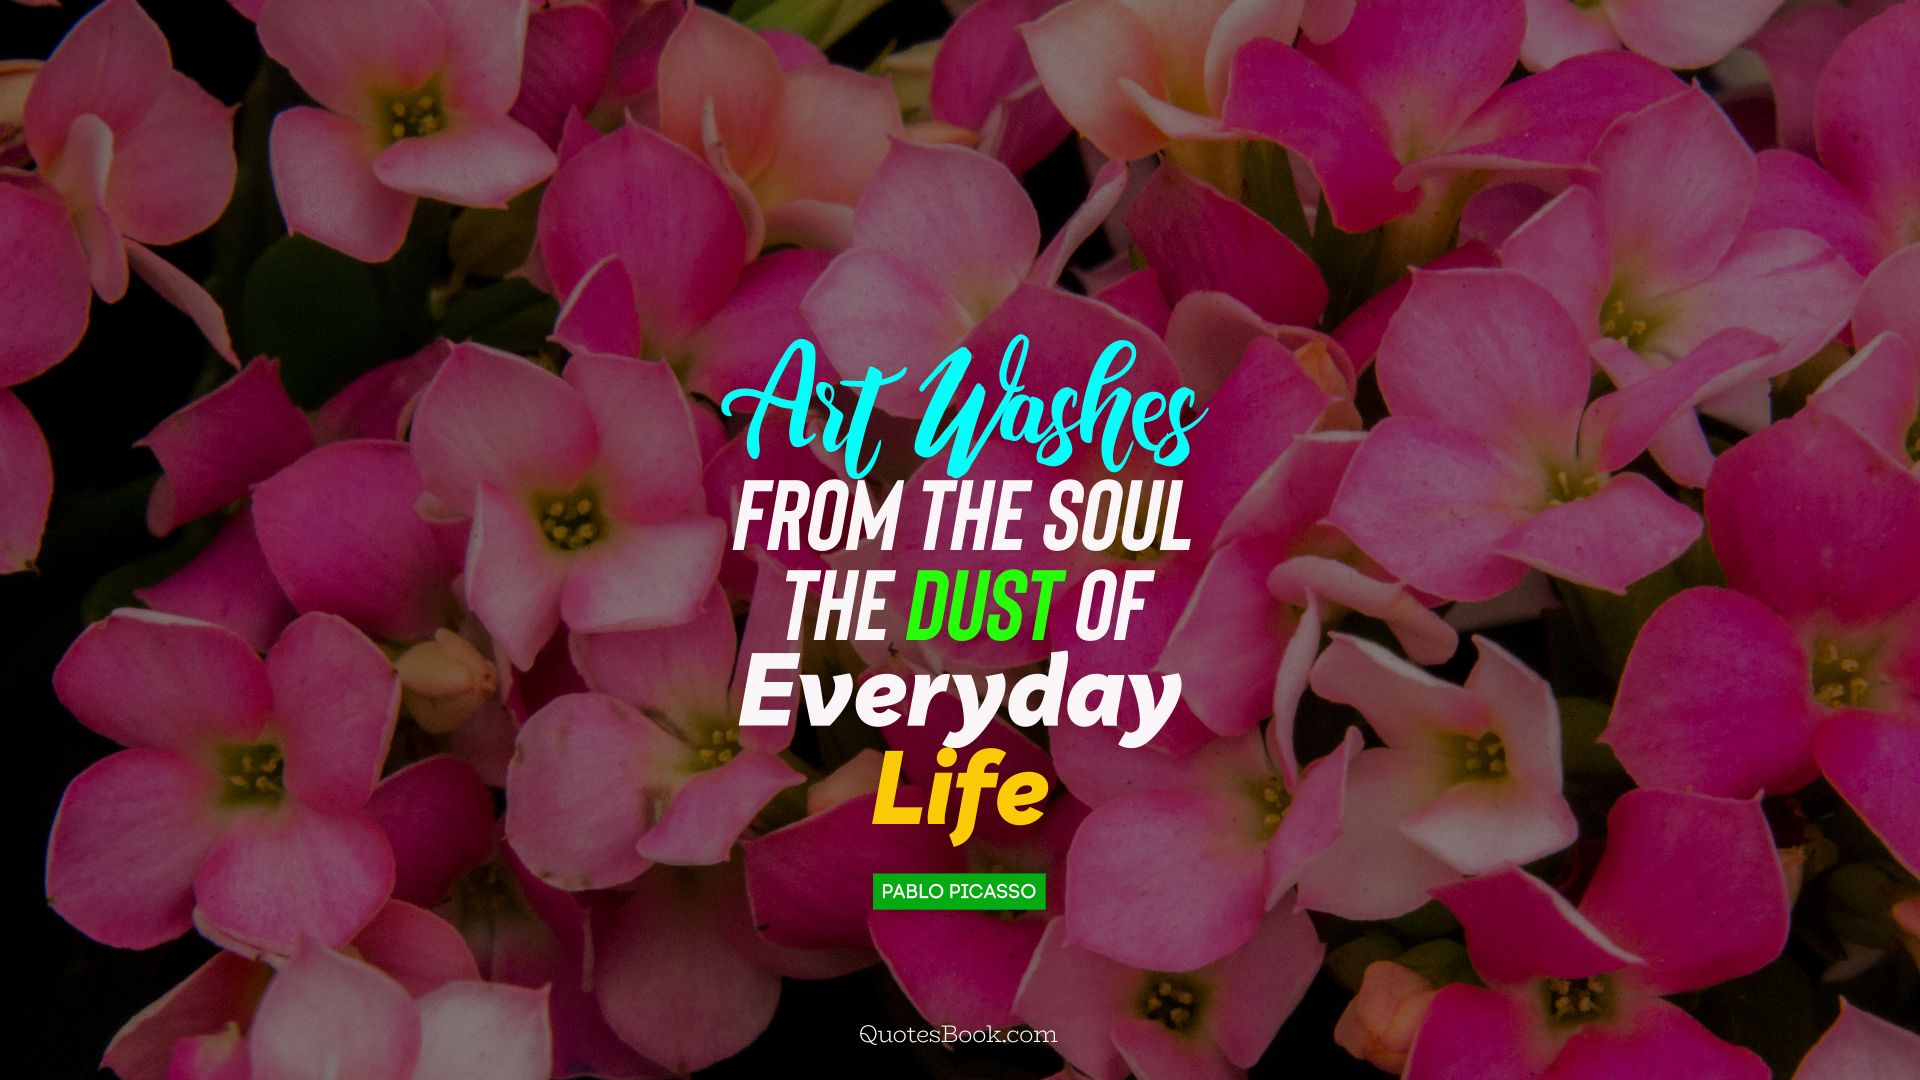 Art washes  from the soul the dust of everyday life. - Quote by Pablo Picasso